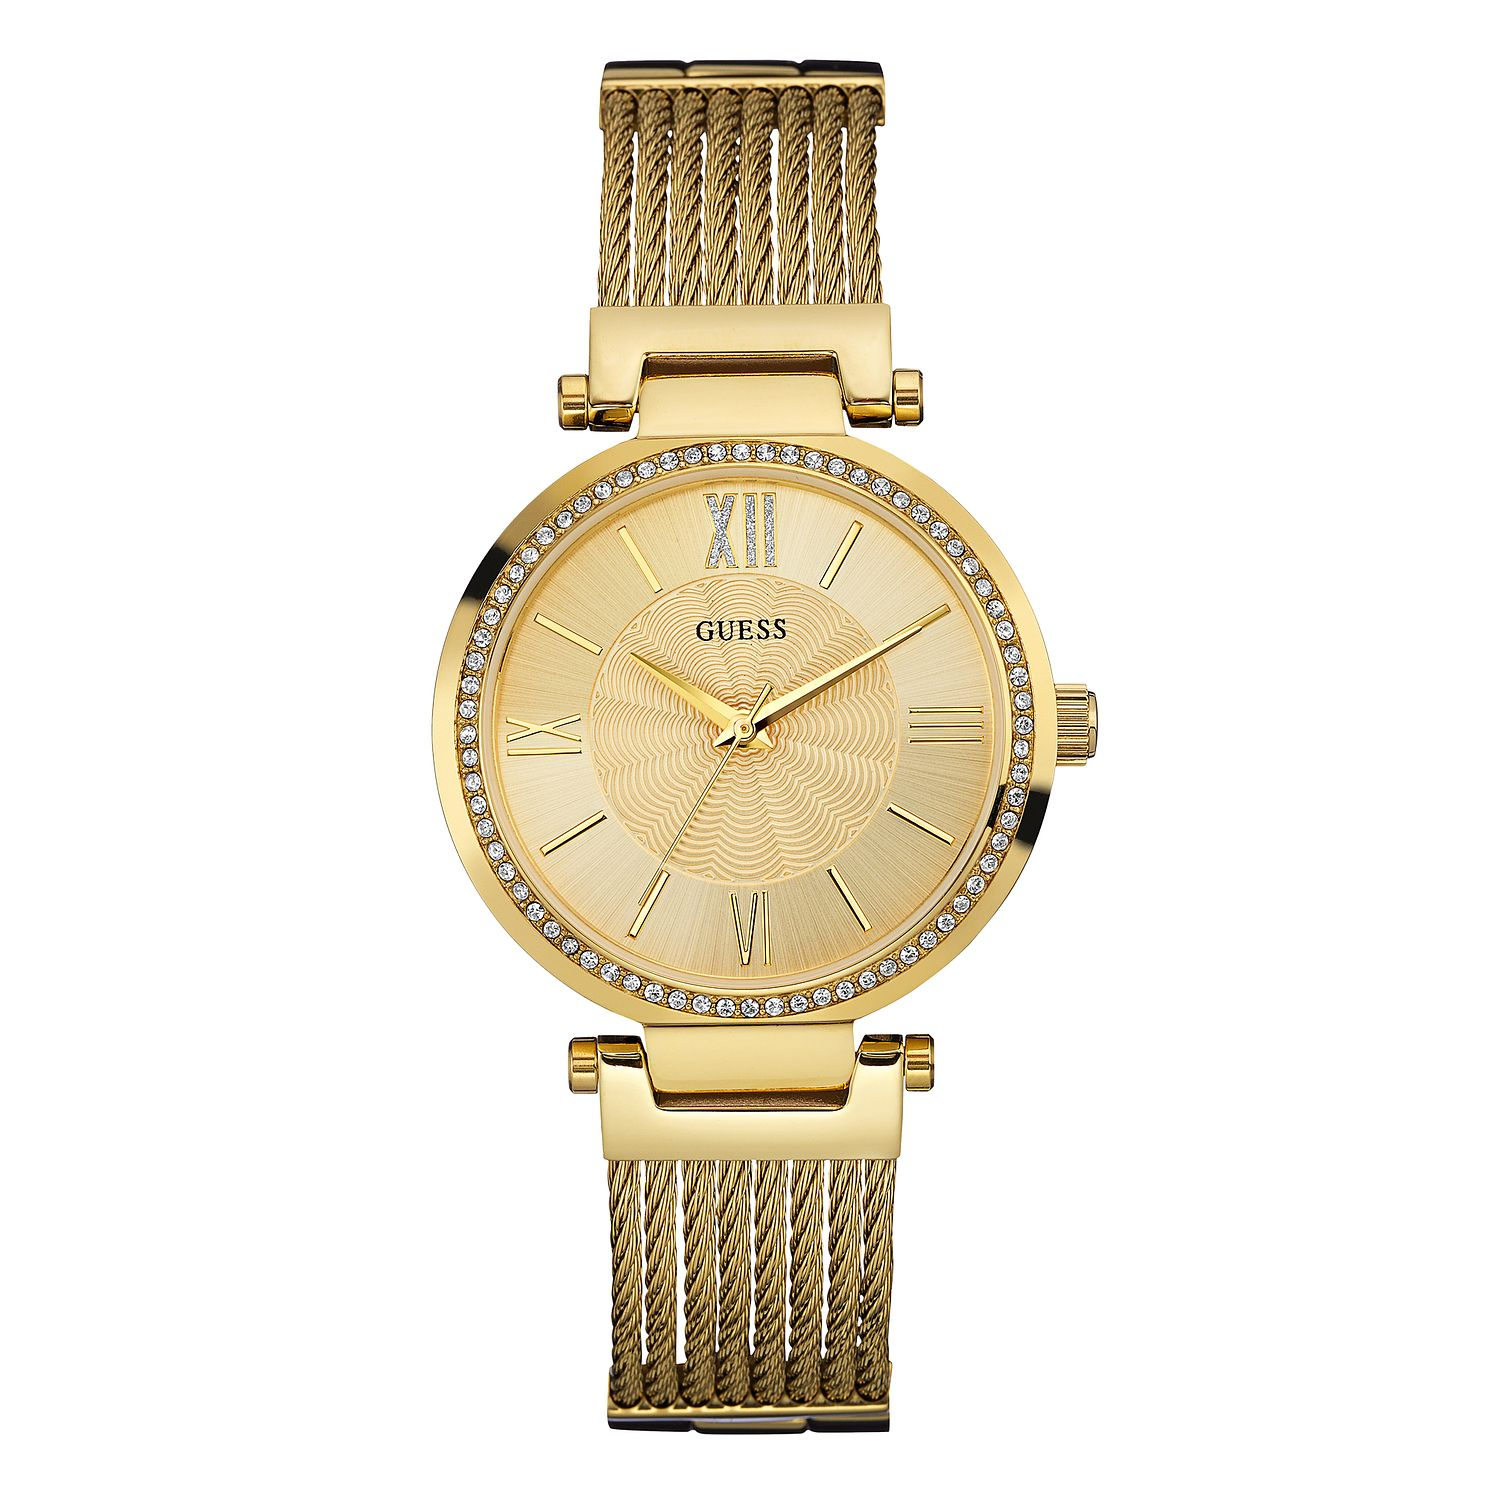 Guess Soho Crystal Ladies' Yellow Gold Tone Bracelet Watch - Product number 1184385